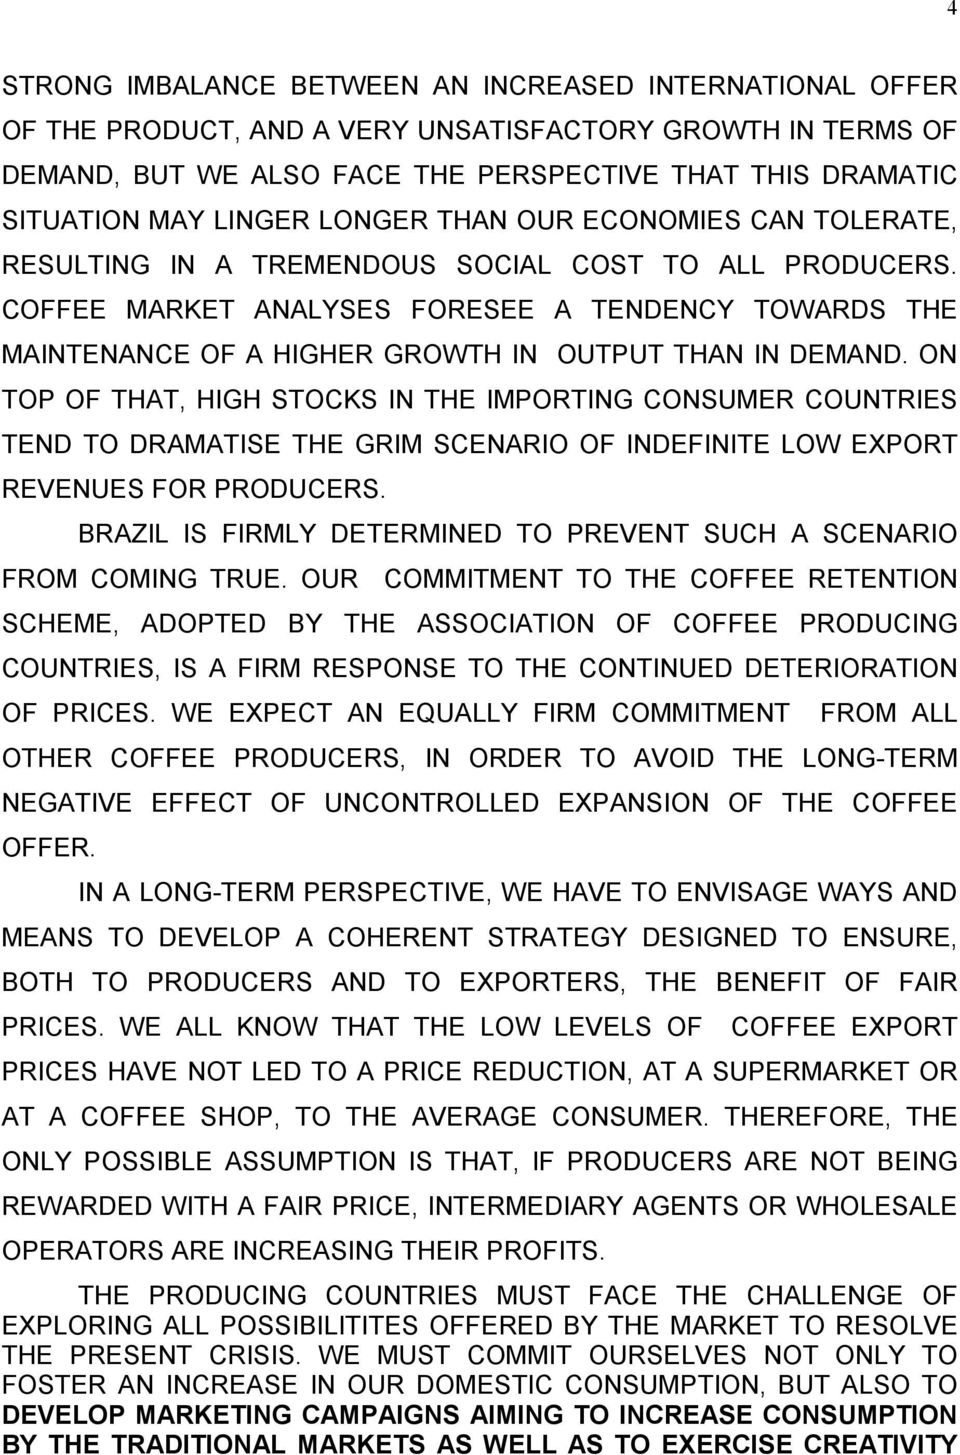 COFFEE MARKET ANALYSES FORESEE A TENDENCY TOWARDS THE MAINTENANCE OF A HIGHER GROWTH IN OUTPUT THAN IN DEMAND.